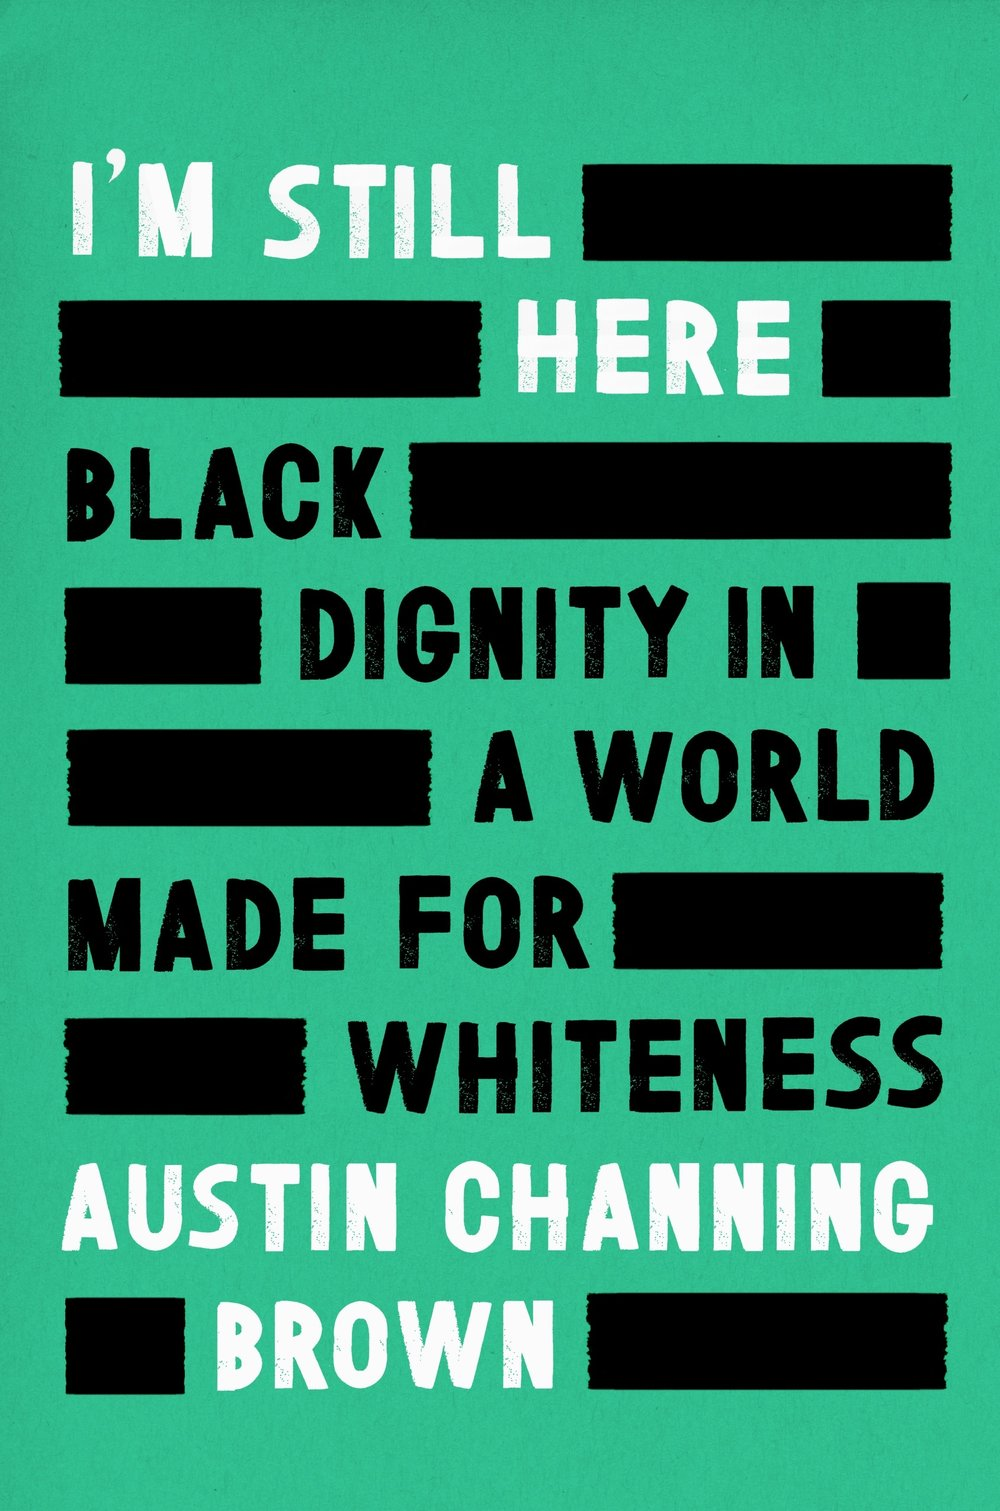 The Book Austin Channing Brown